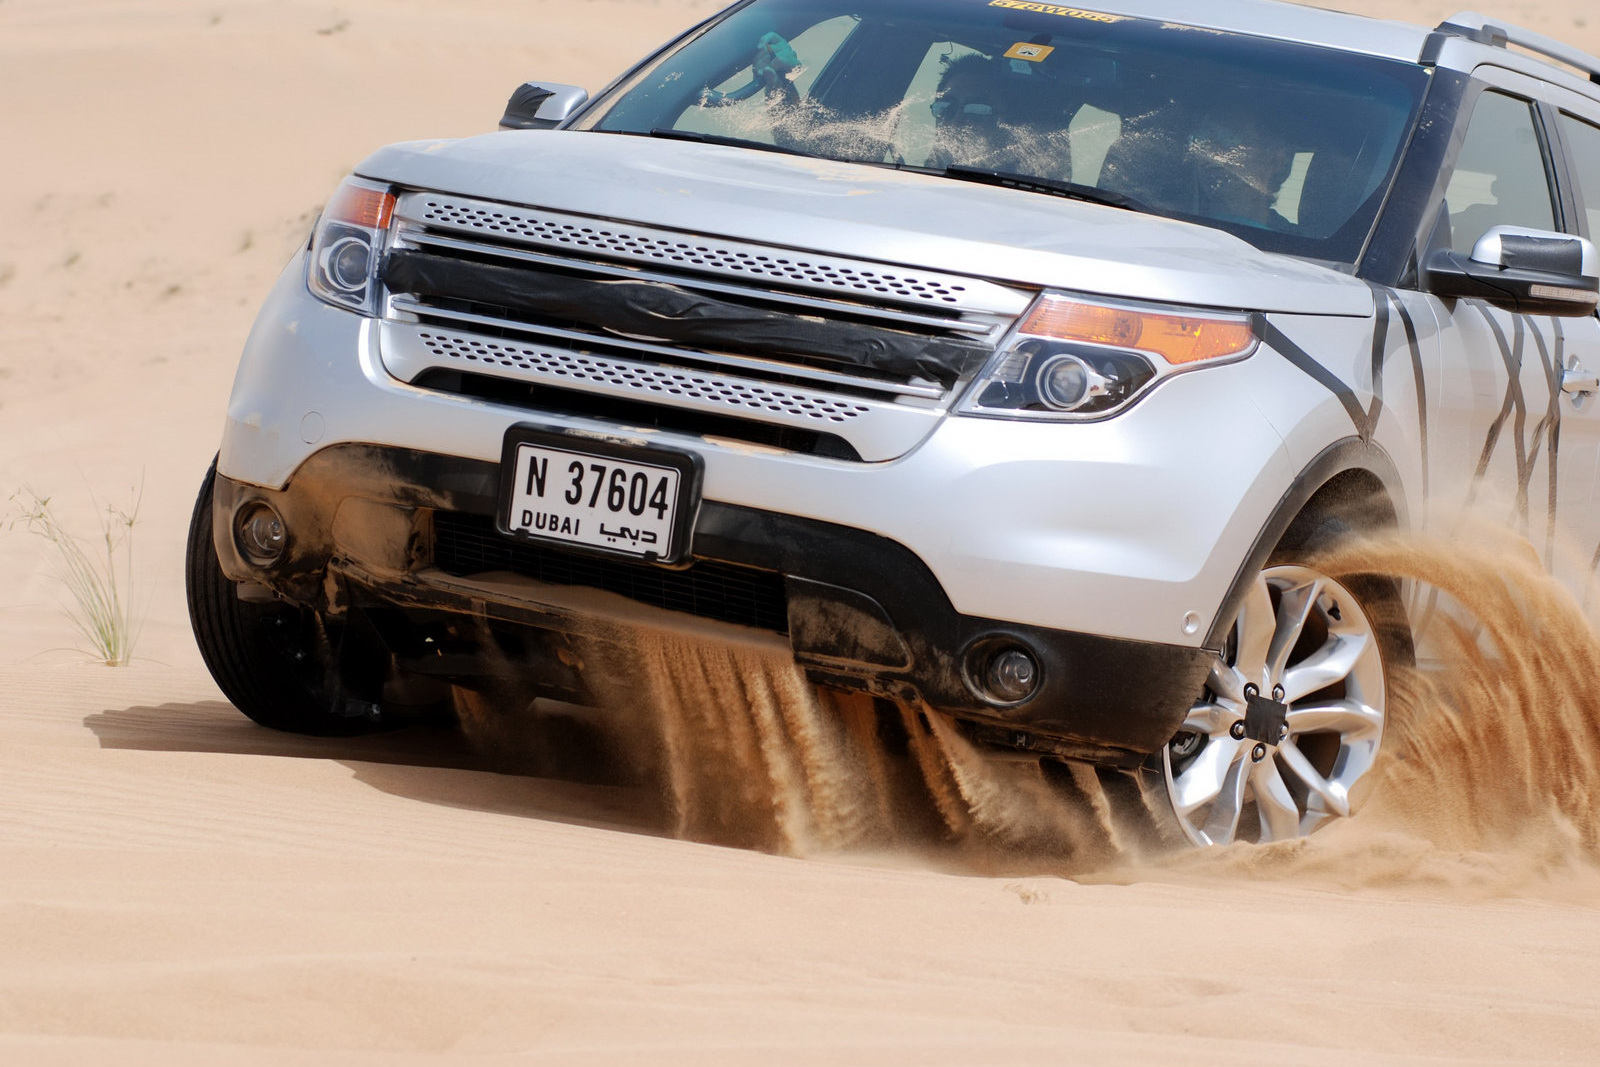 2011 Ford Explorer Dubai Testing 5 Ford explorer 2011   Specification, Price & Release date